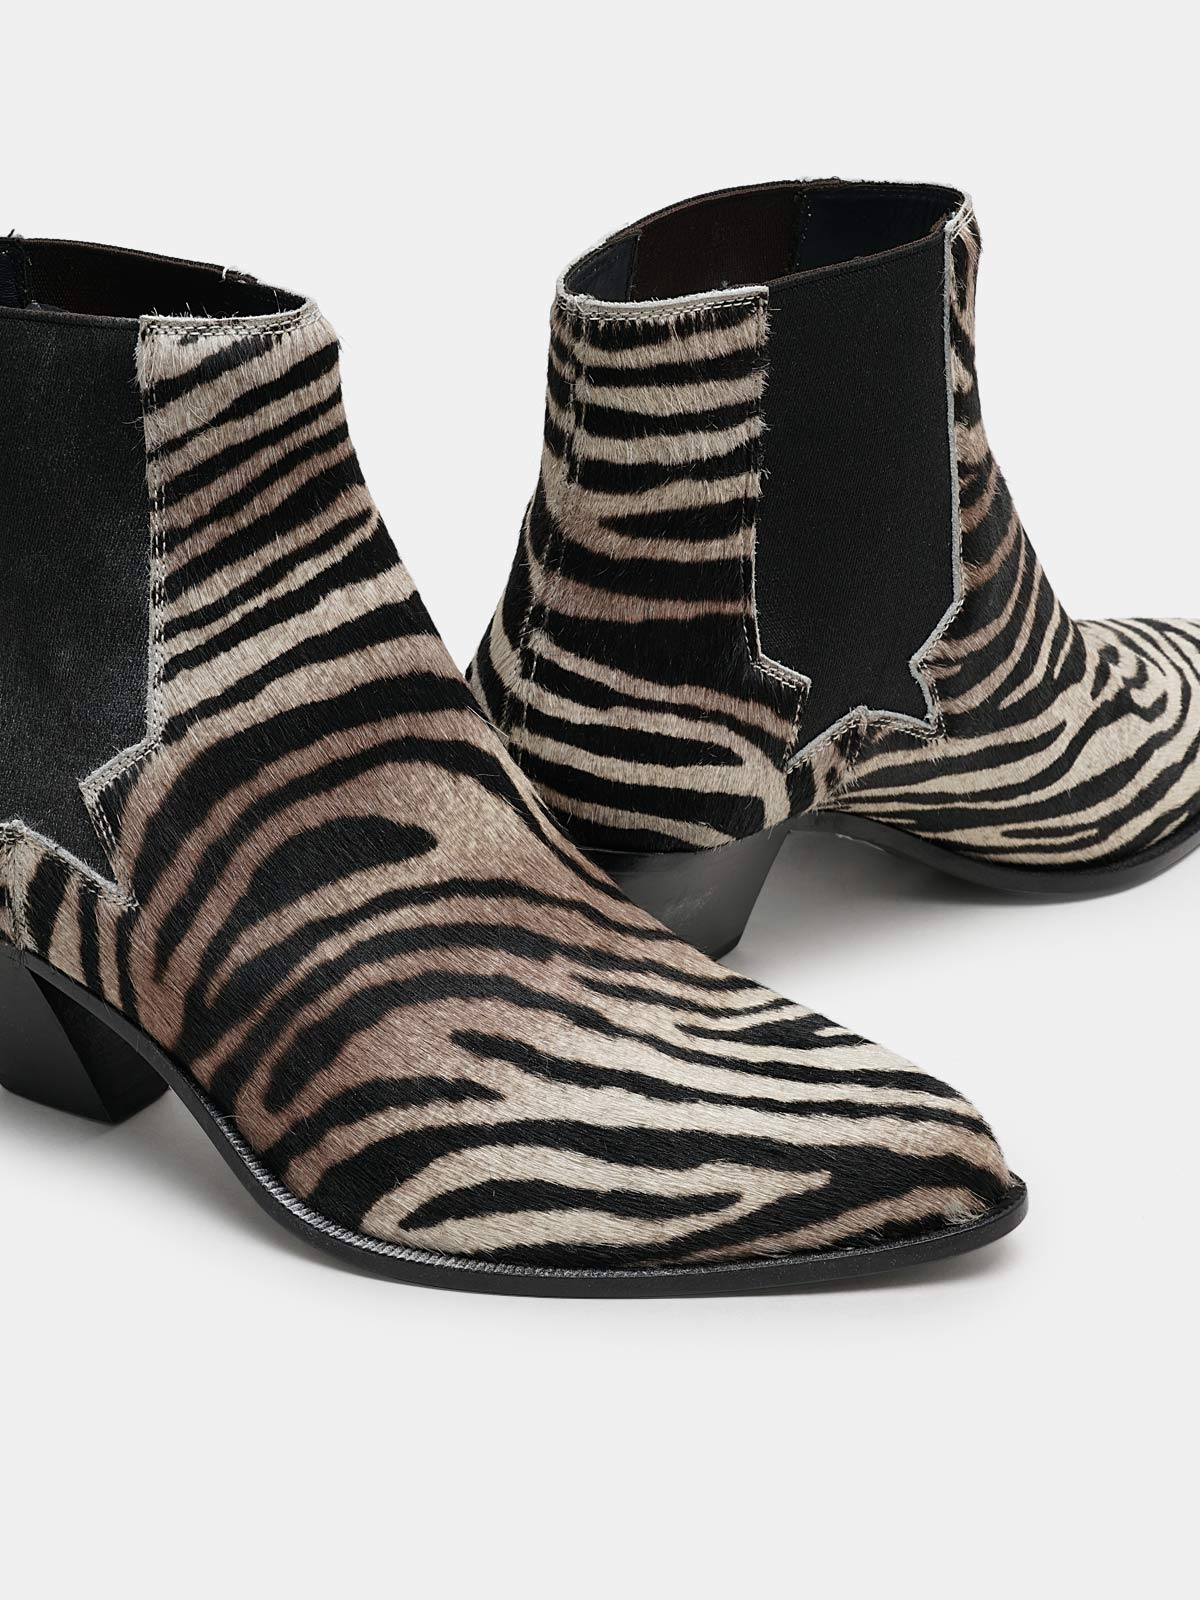 Golden Goose - Sunset ankle boots in zebra-print pony skin in